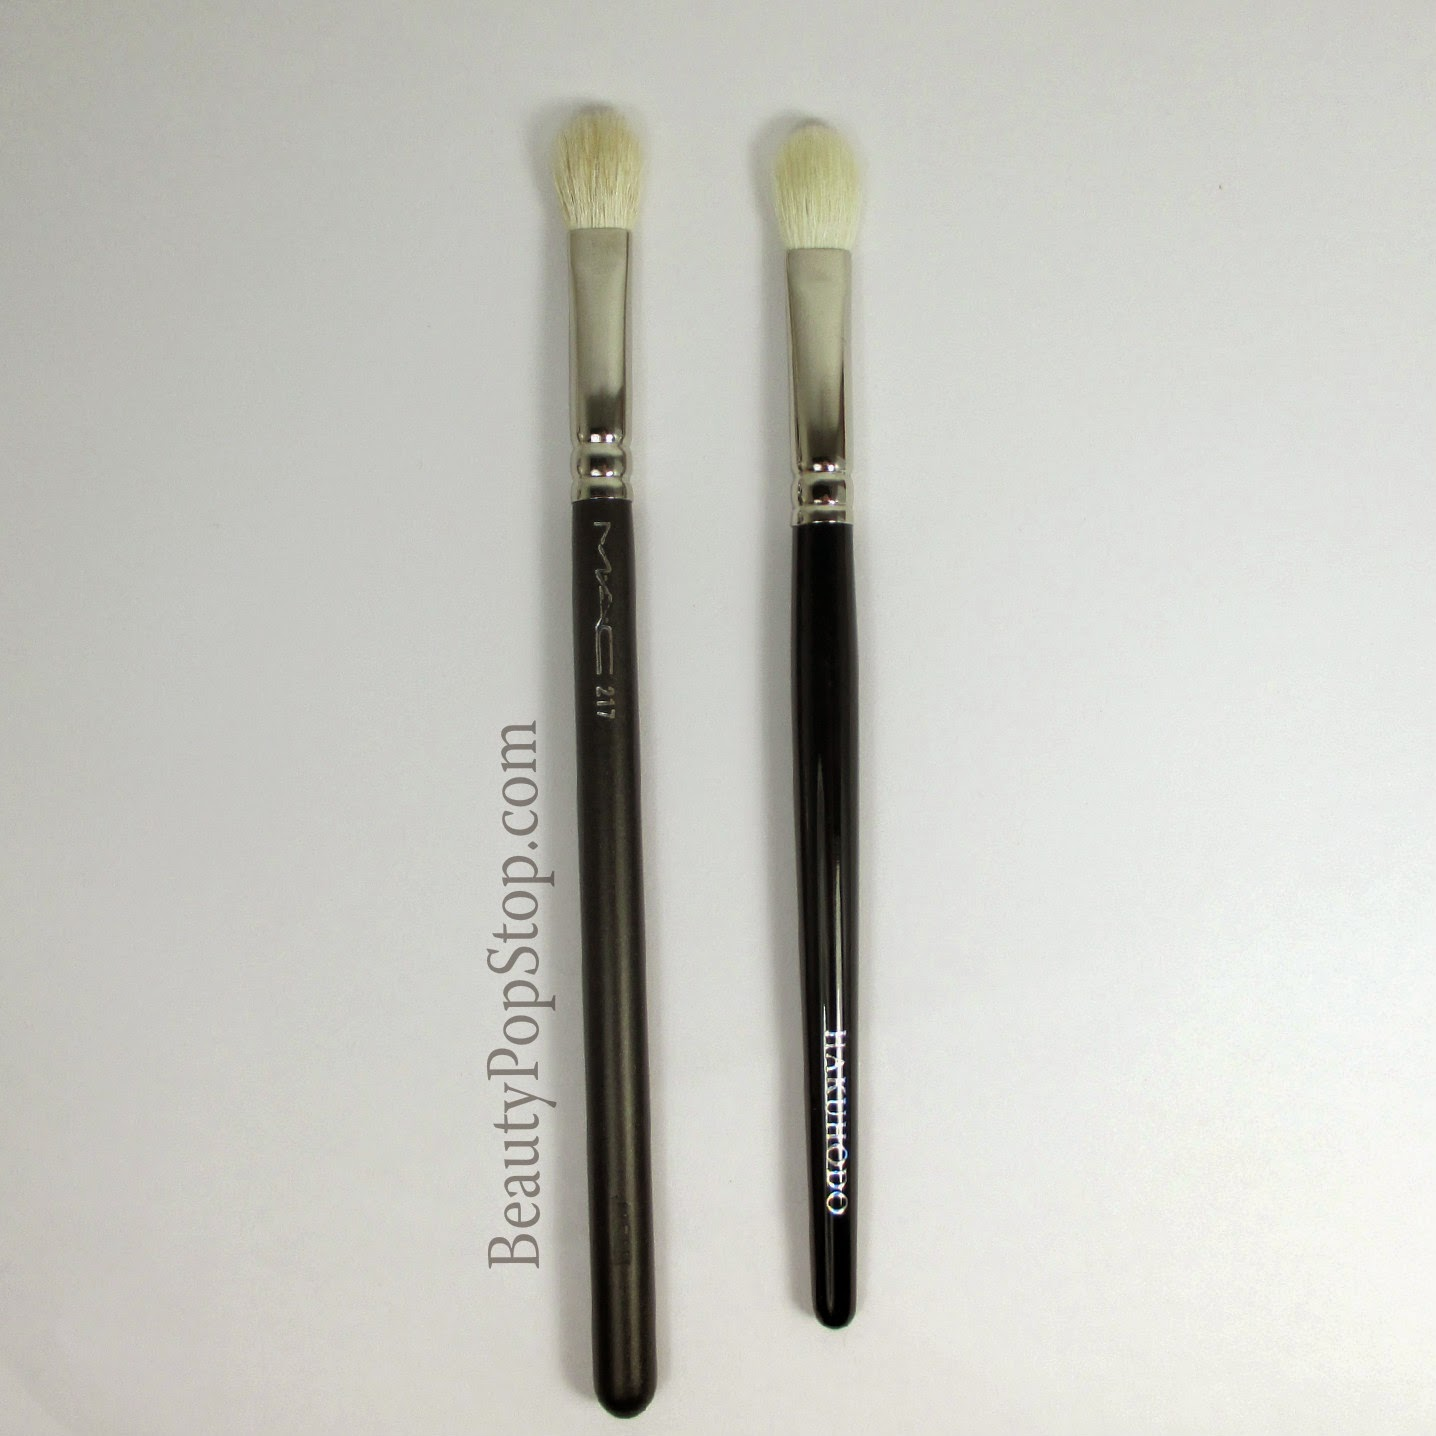 hakuhodo j5523 vs mac 217 comparison